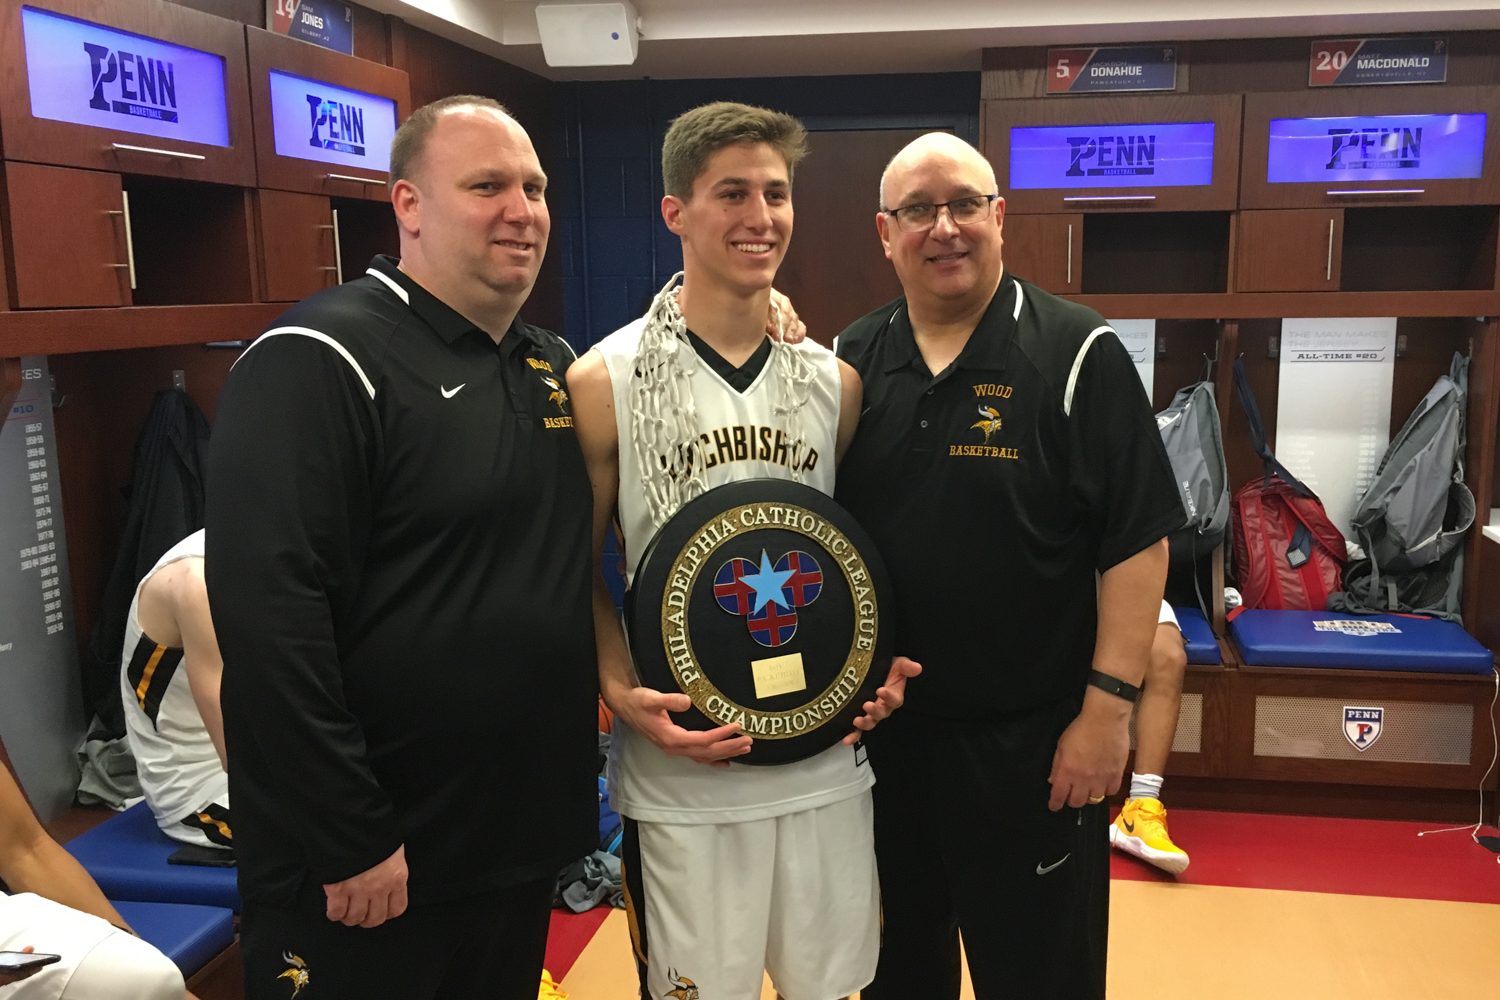 Coach Chris Roantree, Collin Gillespie, and Head Coach John Mosco - in the locker room at the Palestra after winning the 2017 Philadelphia Catholic League (PCL) Championship.